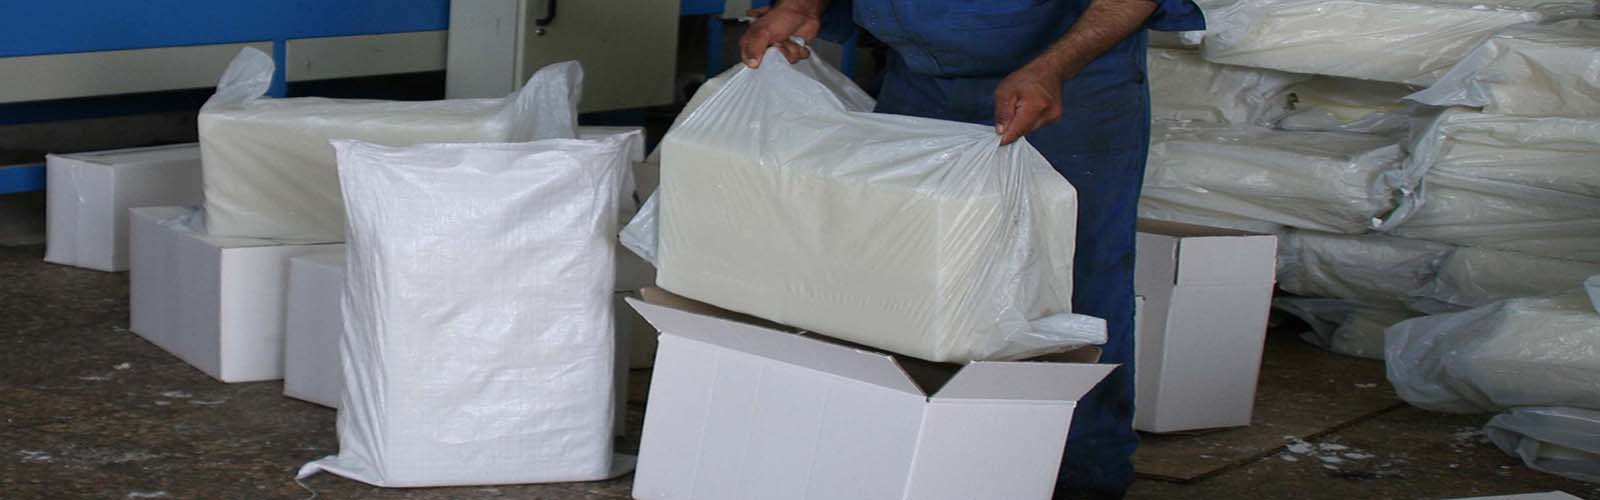 Paraffin Wax Packages